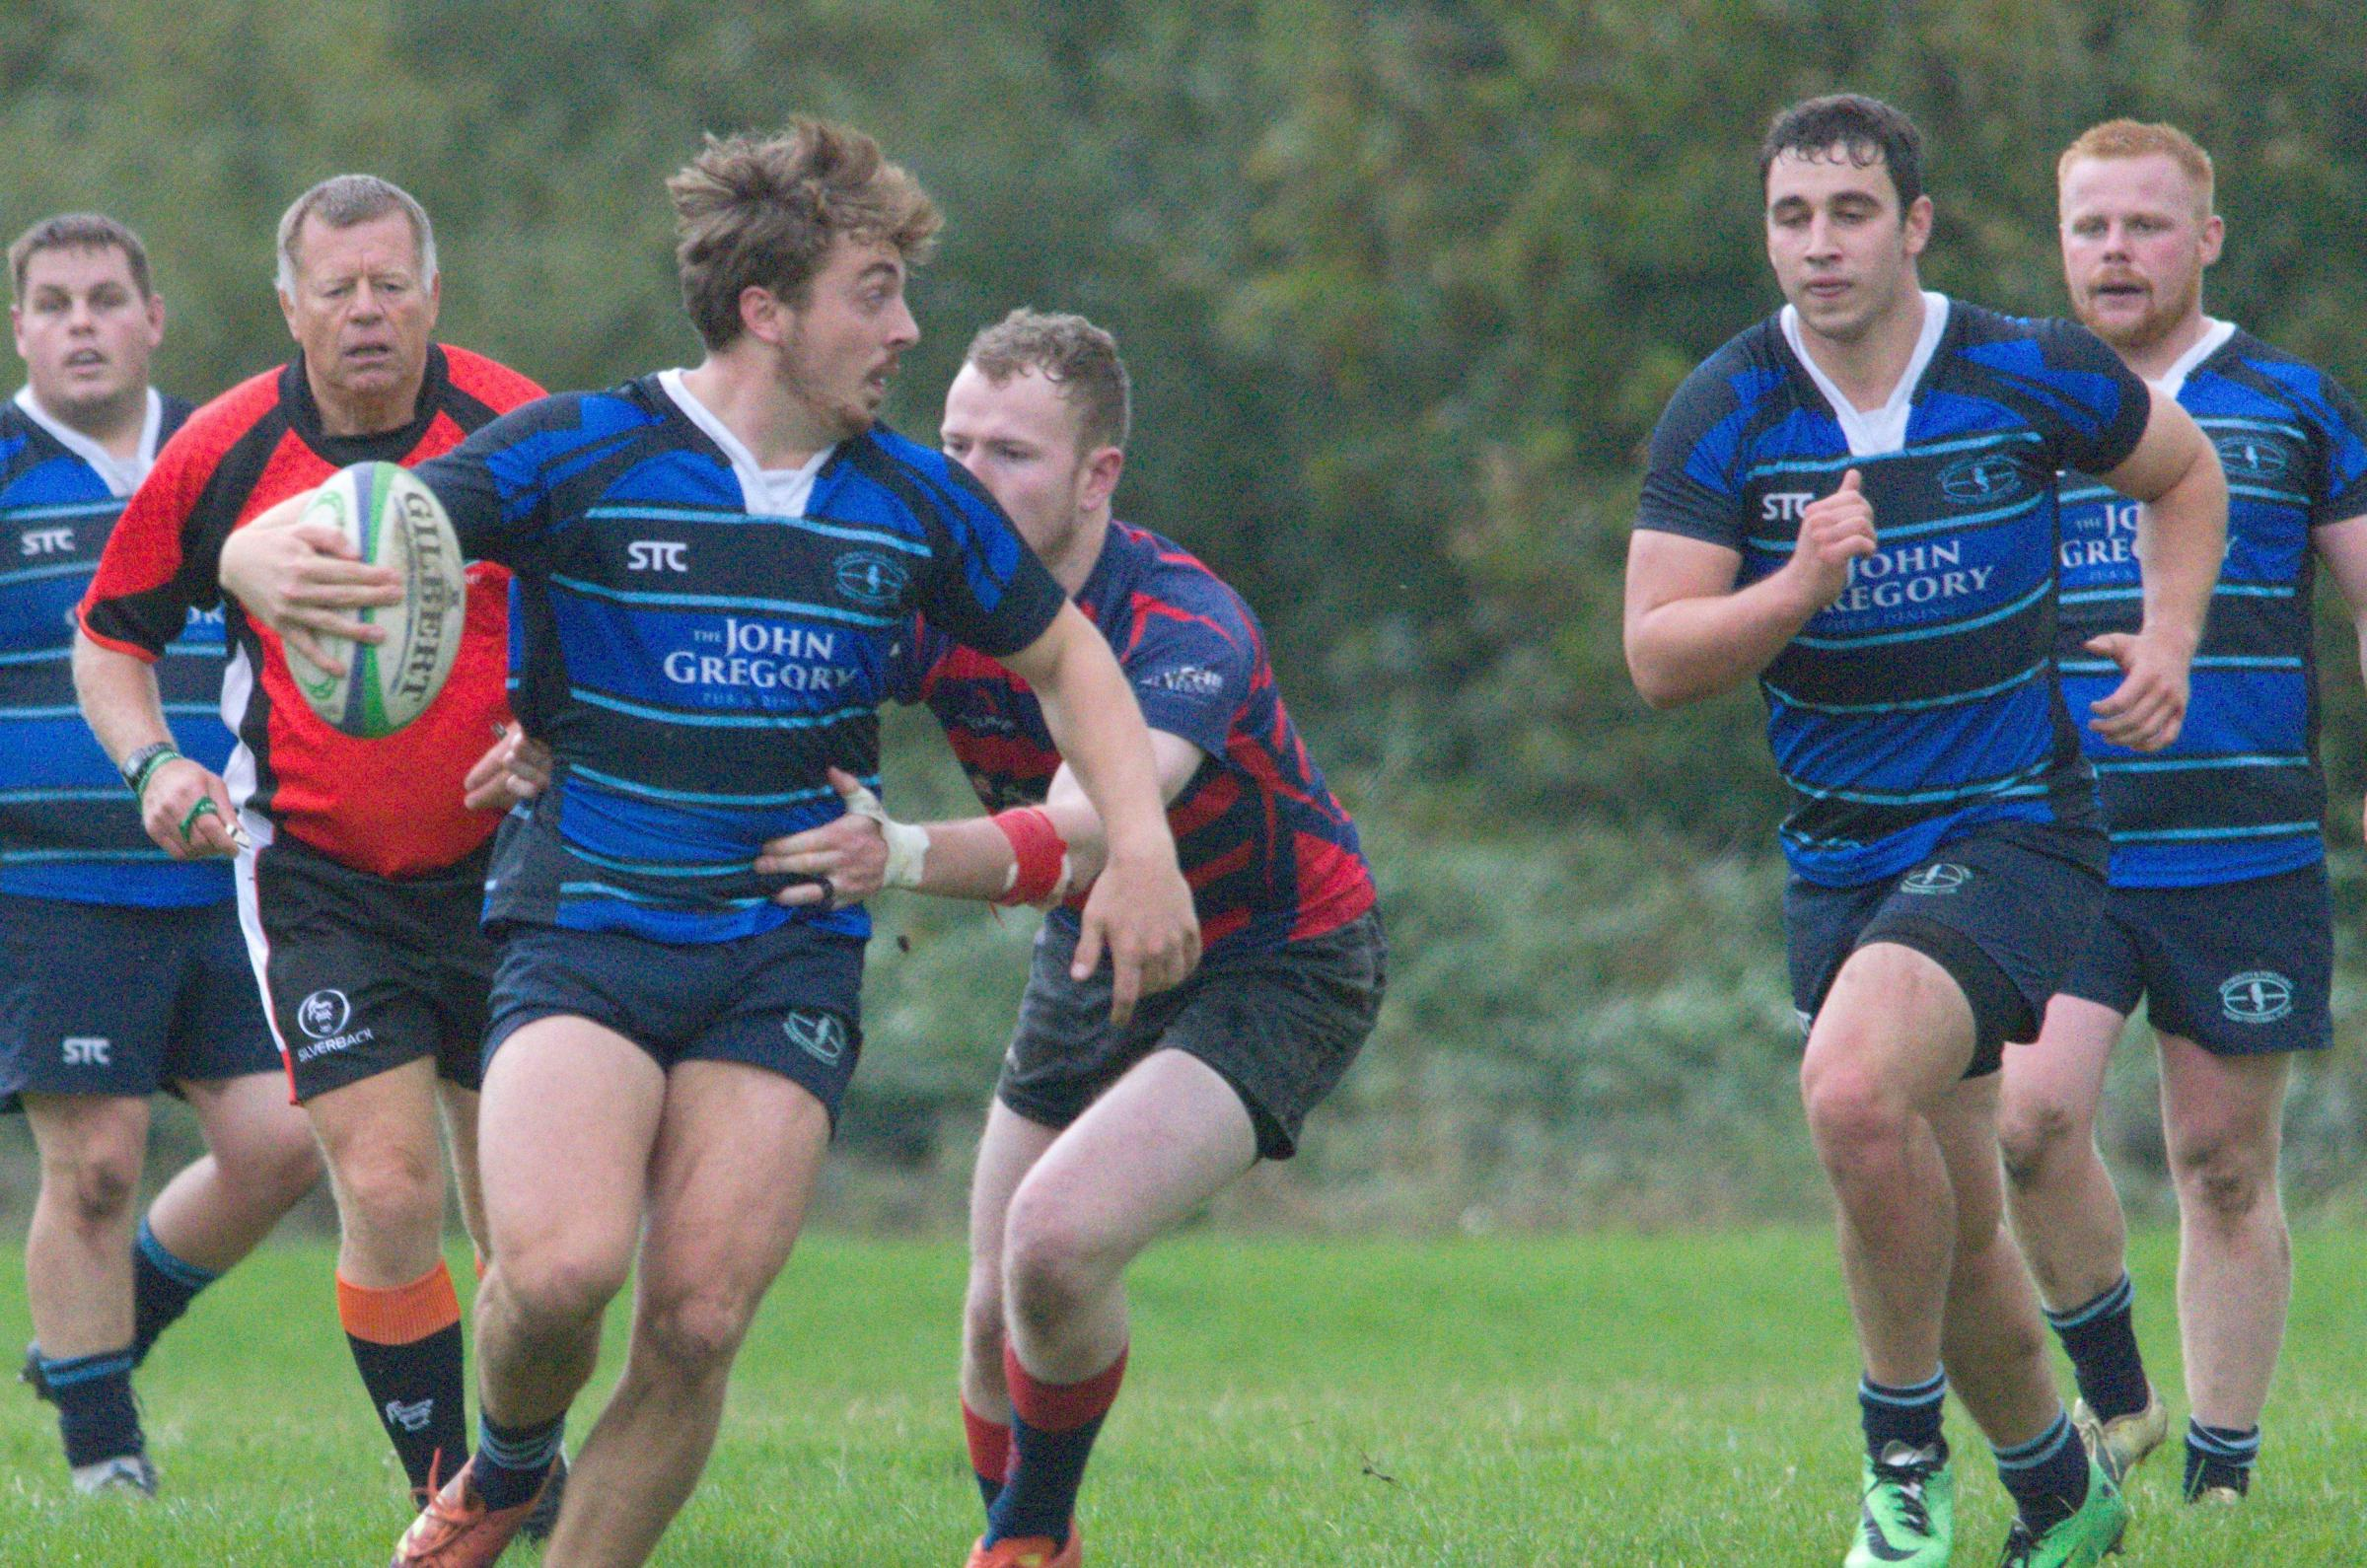 Rugby: Weymouth and Dorchester to do battle in Ridgeway Rumble - Dorset Echo